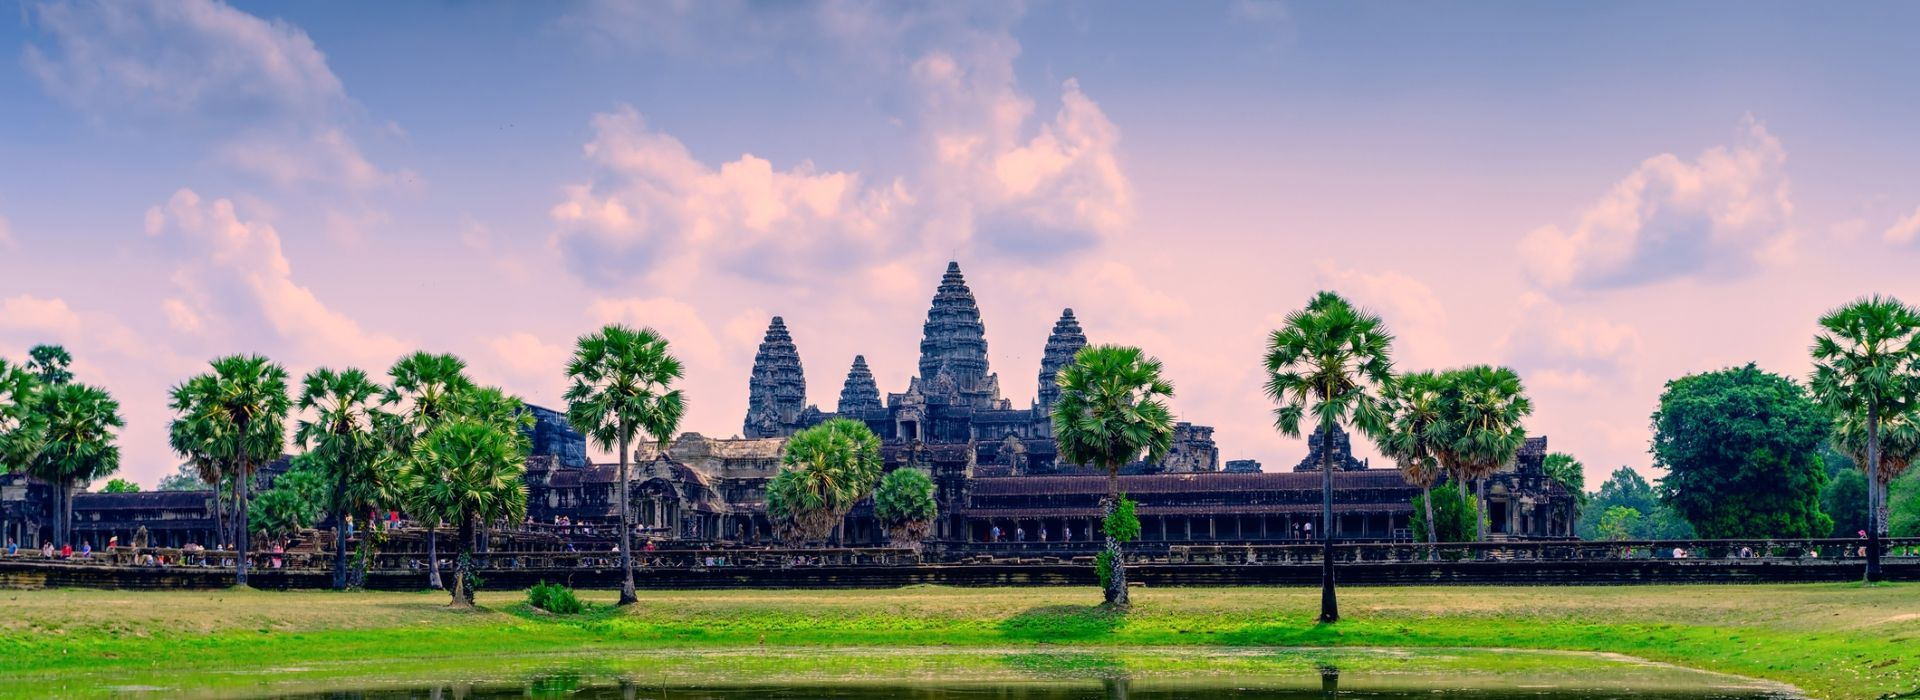 Beer and drinks tasting Tours in Cambodia